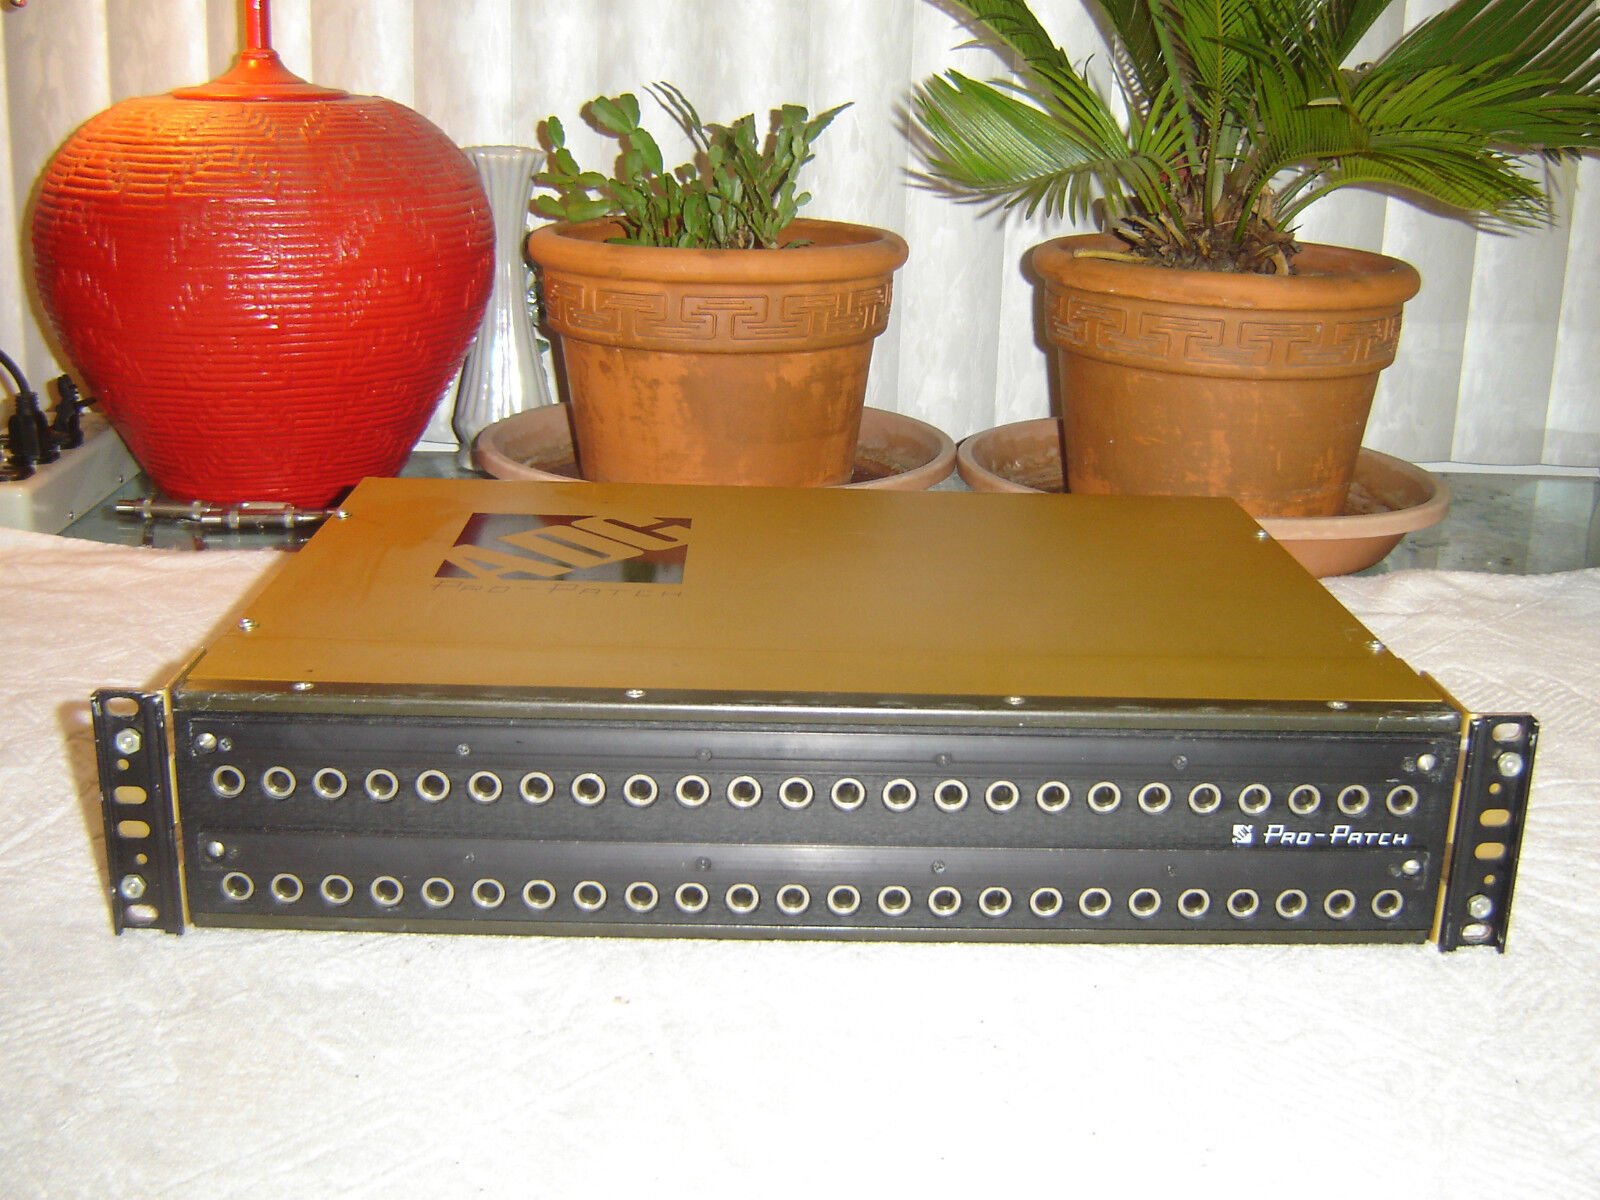 ADC Pro Patch P N 4-26170-0030, 48 Point Patch Bay, Vintage Rack